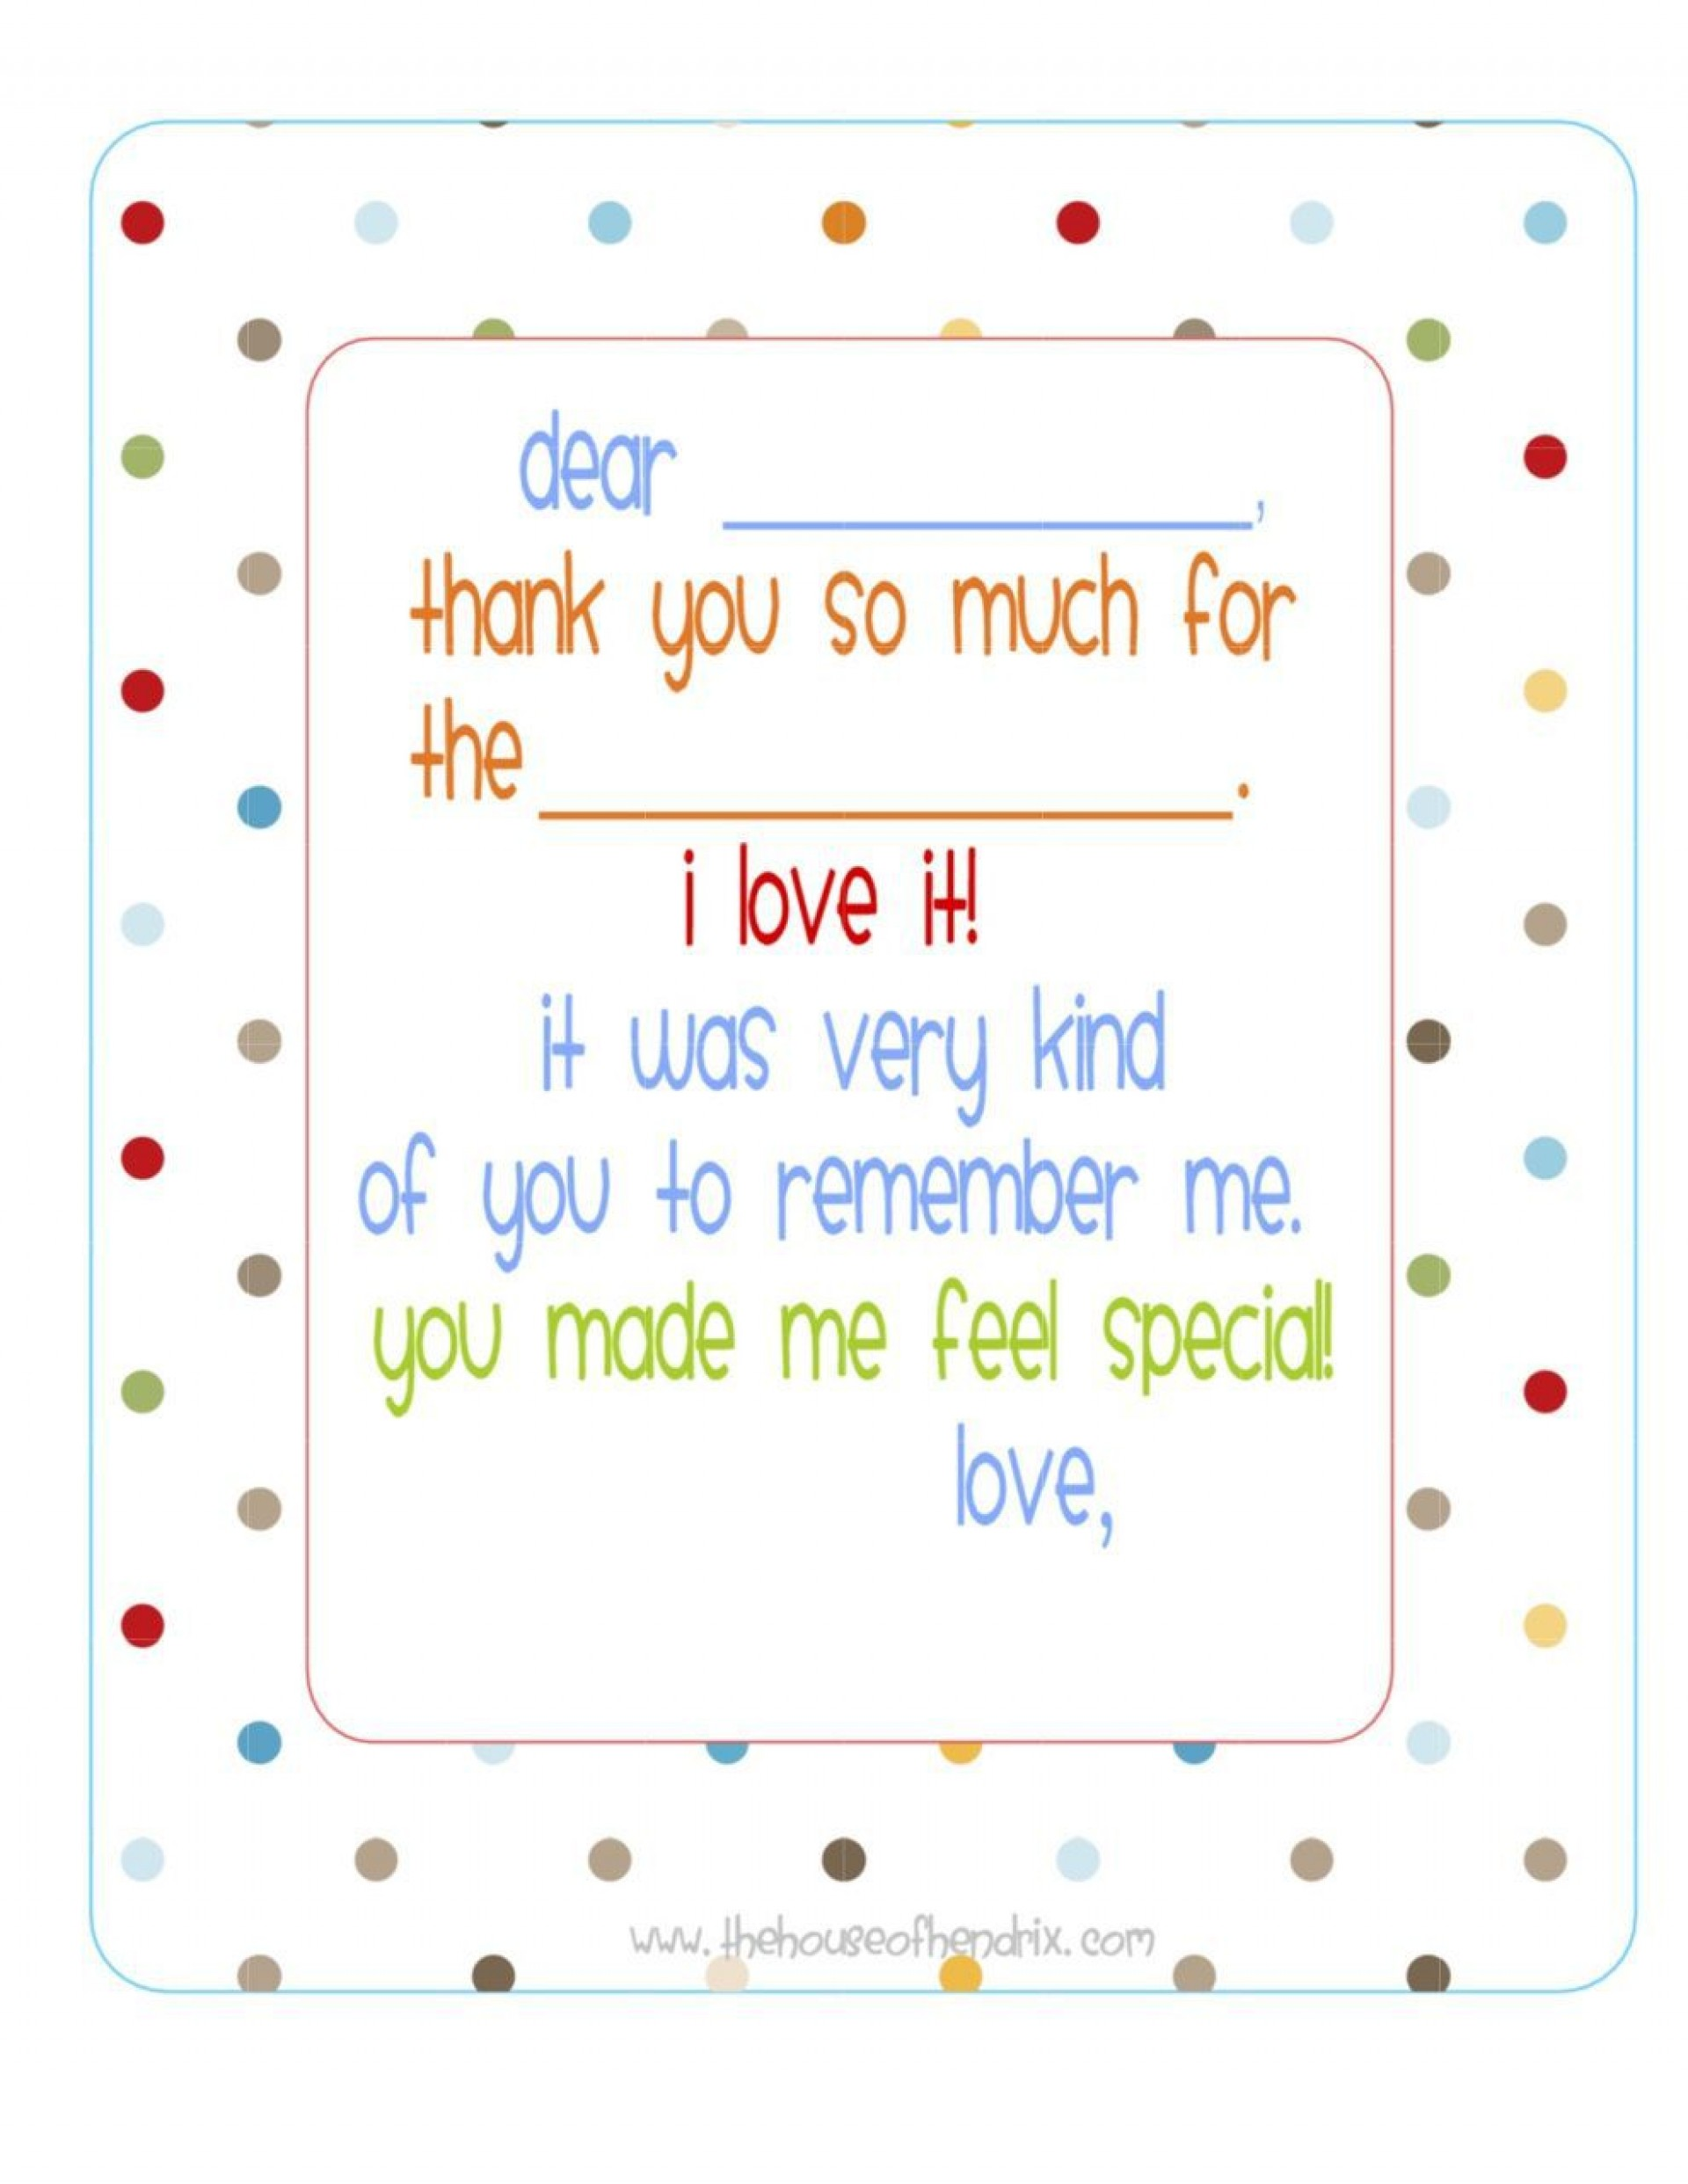 004 Fascinating Thank You Note Template For Kid High Def  Kids Child Pdf Letter1920